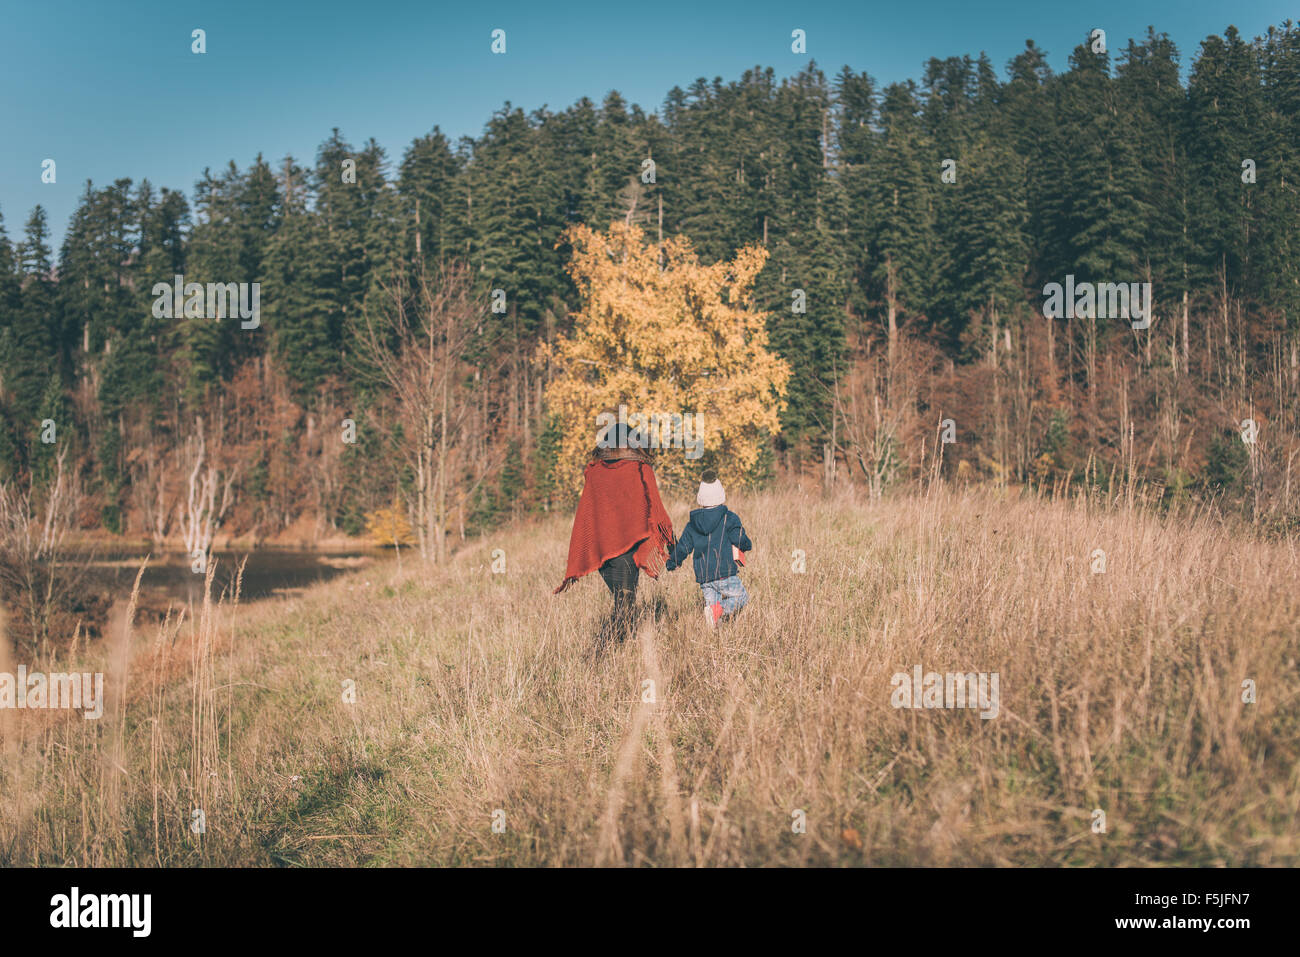 Mother and son walking in nature - Stock Image